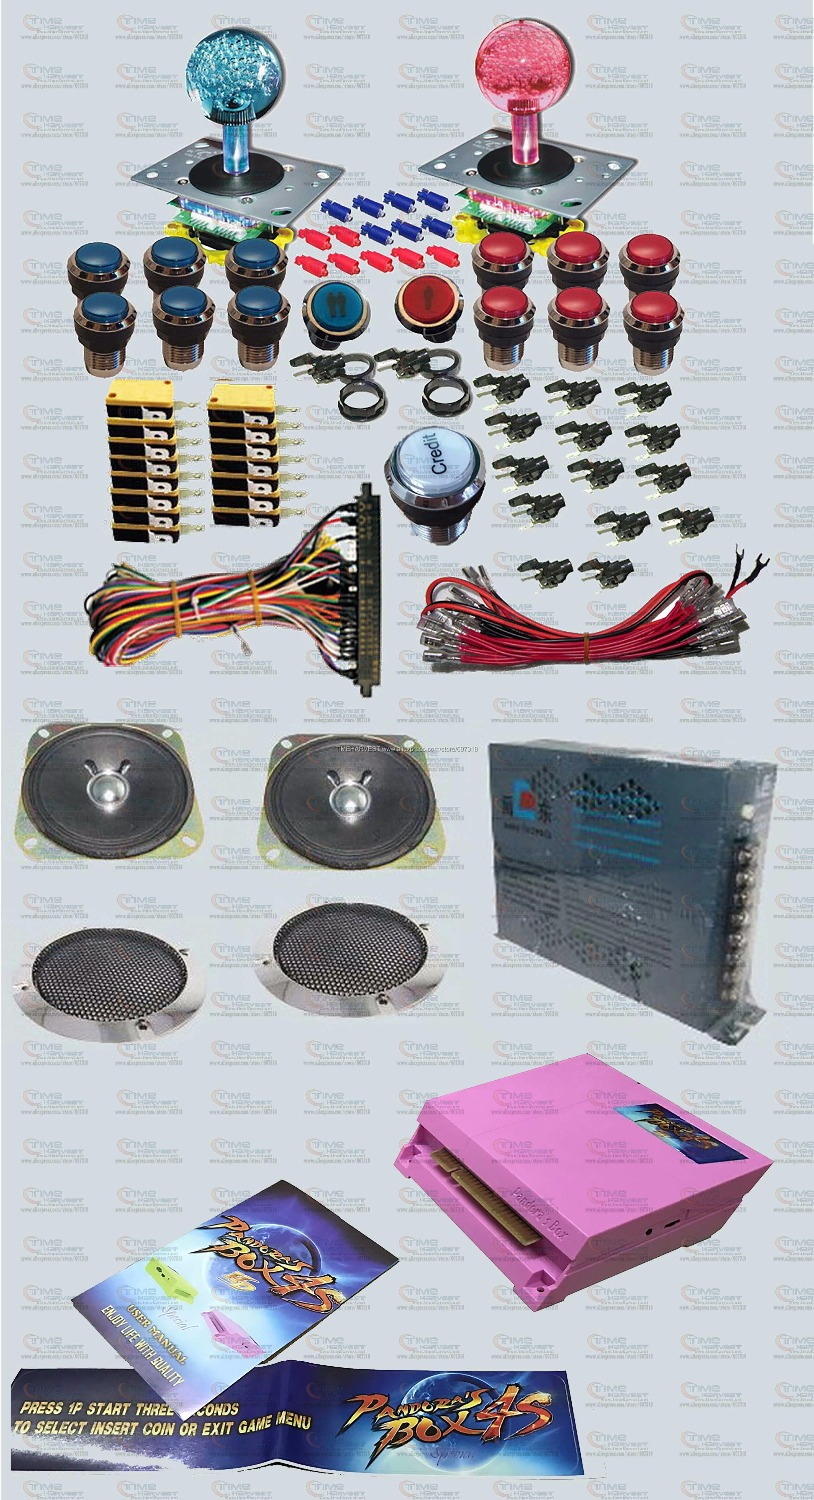 Arcade parts Bundles kit With HDMI Pandora Box 4S games LED illuminated Joystick Chrome LED button Microswitch Jamma Harness hdmi vga pandora box 4s arcade game board 815 in 1 with 28 pin harness for arcade mechine diy arcade kit